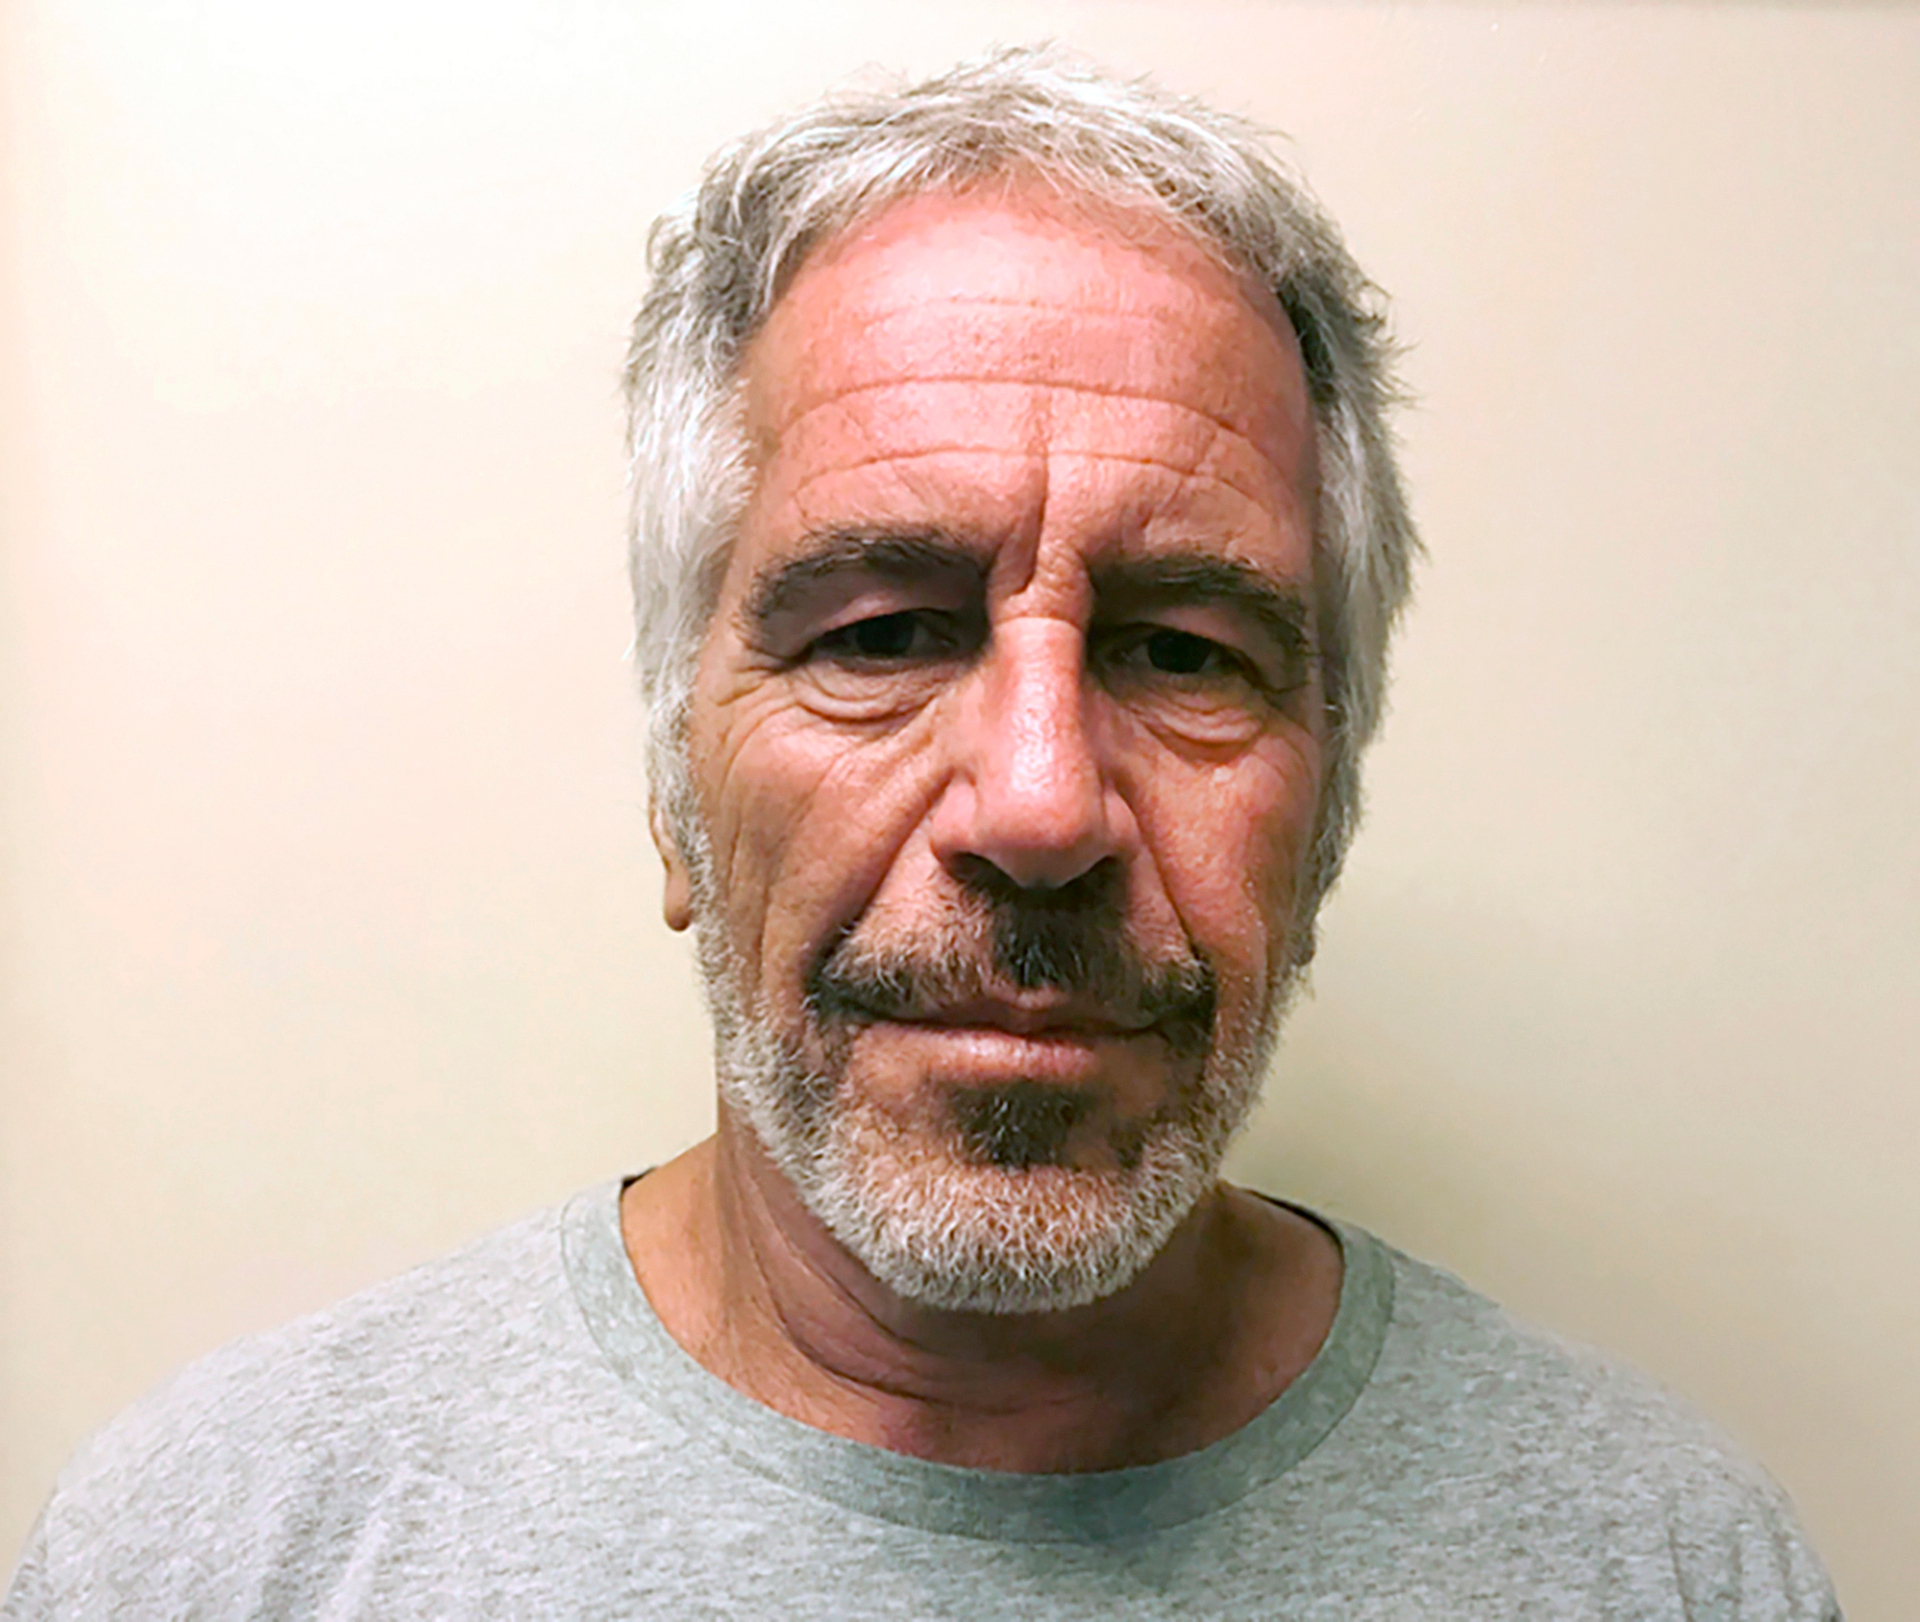 Inside Epstein's cell the night he died